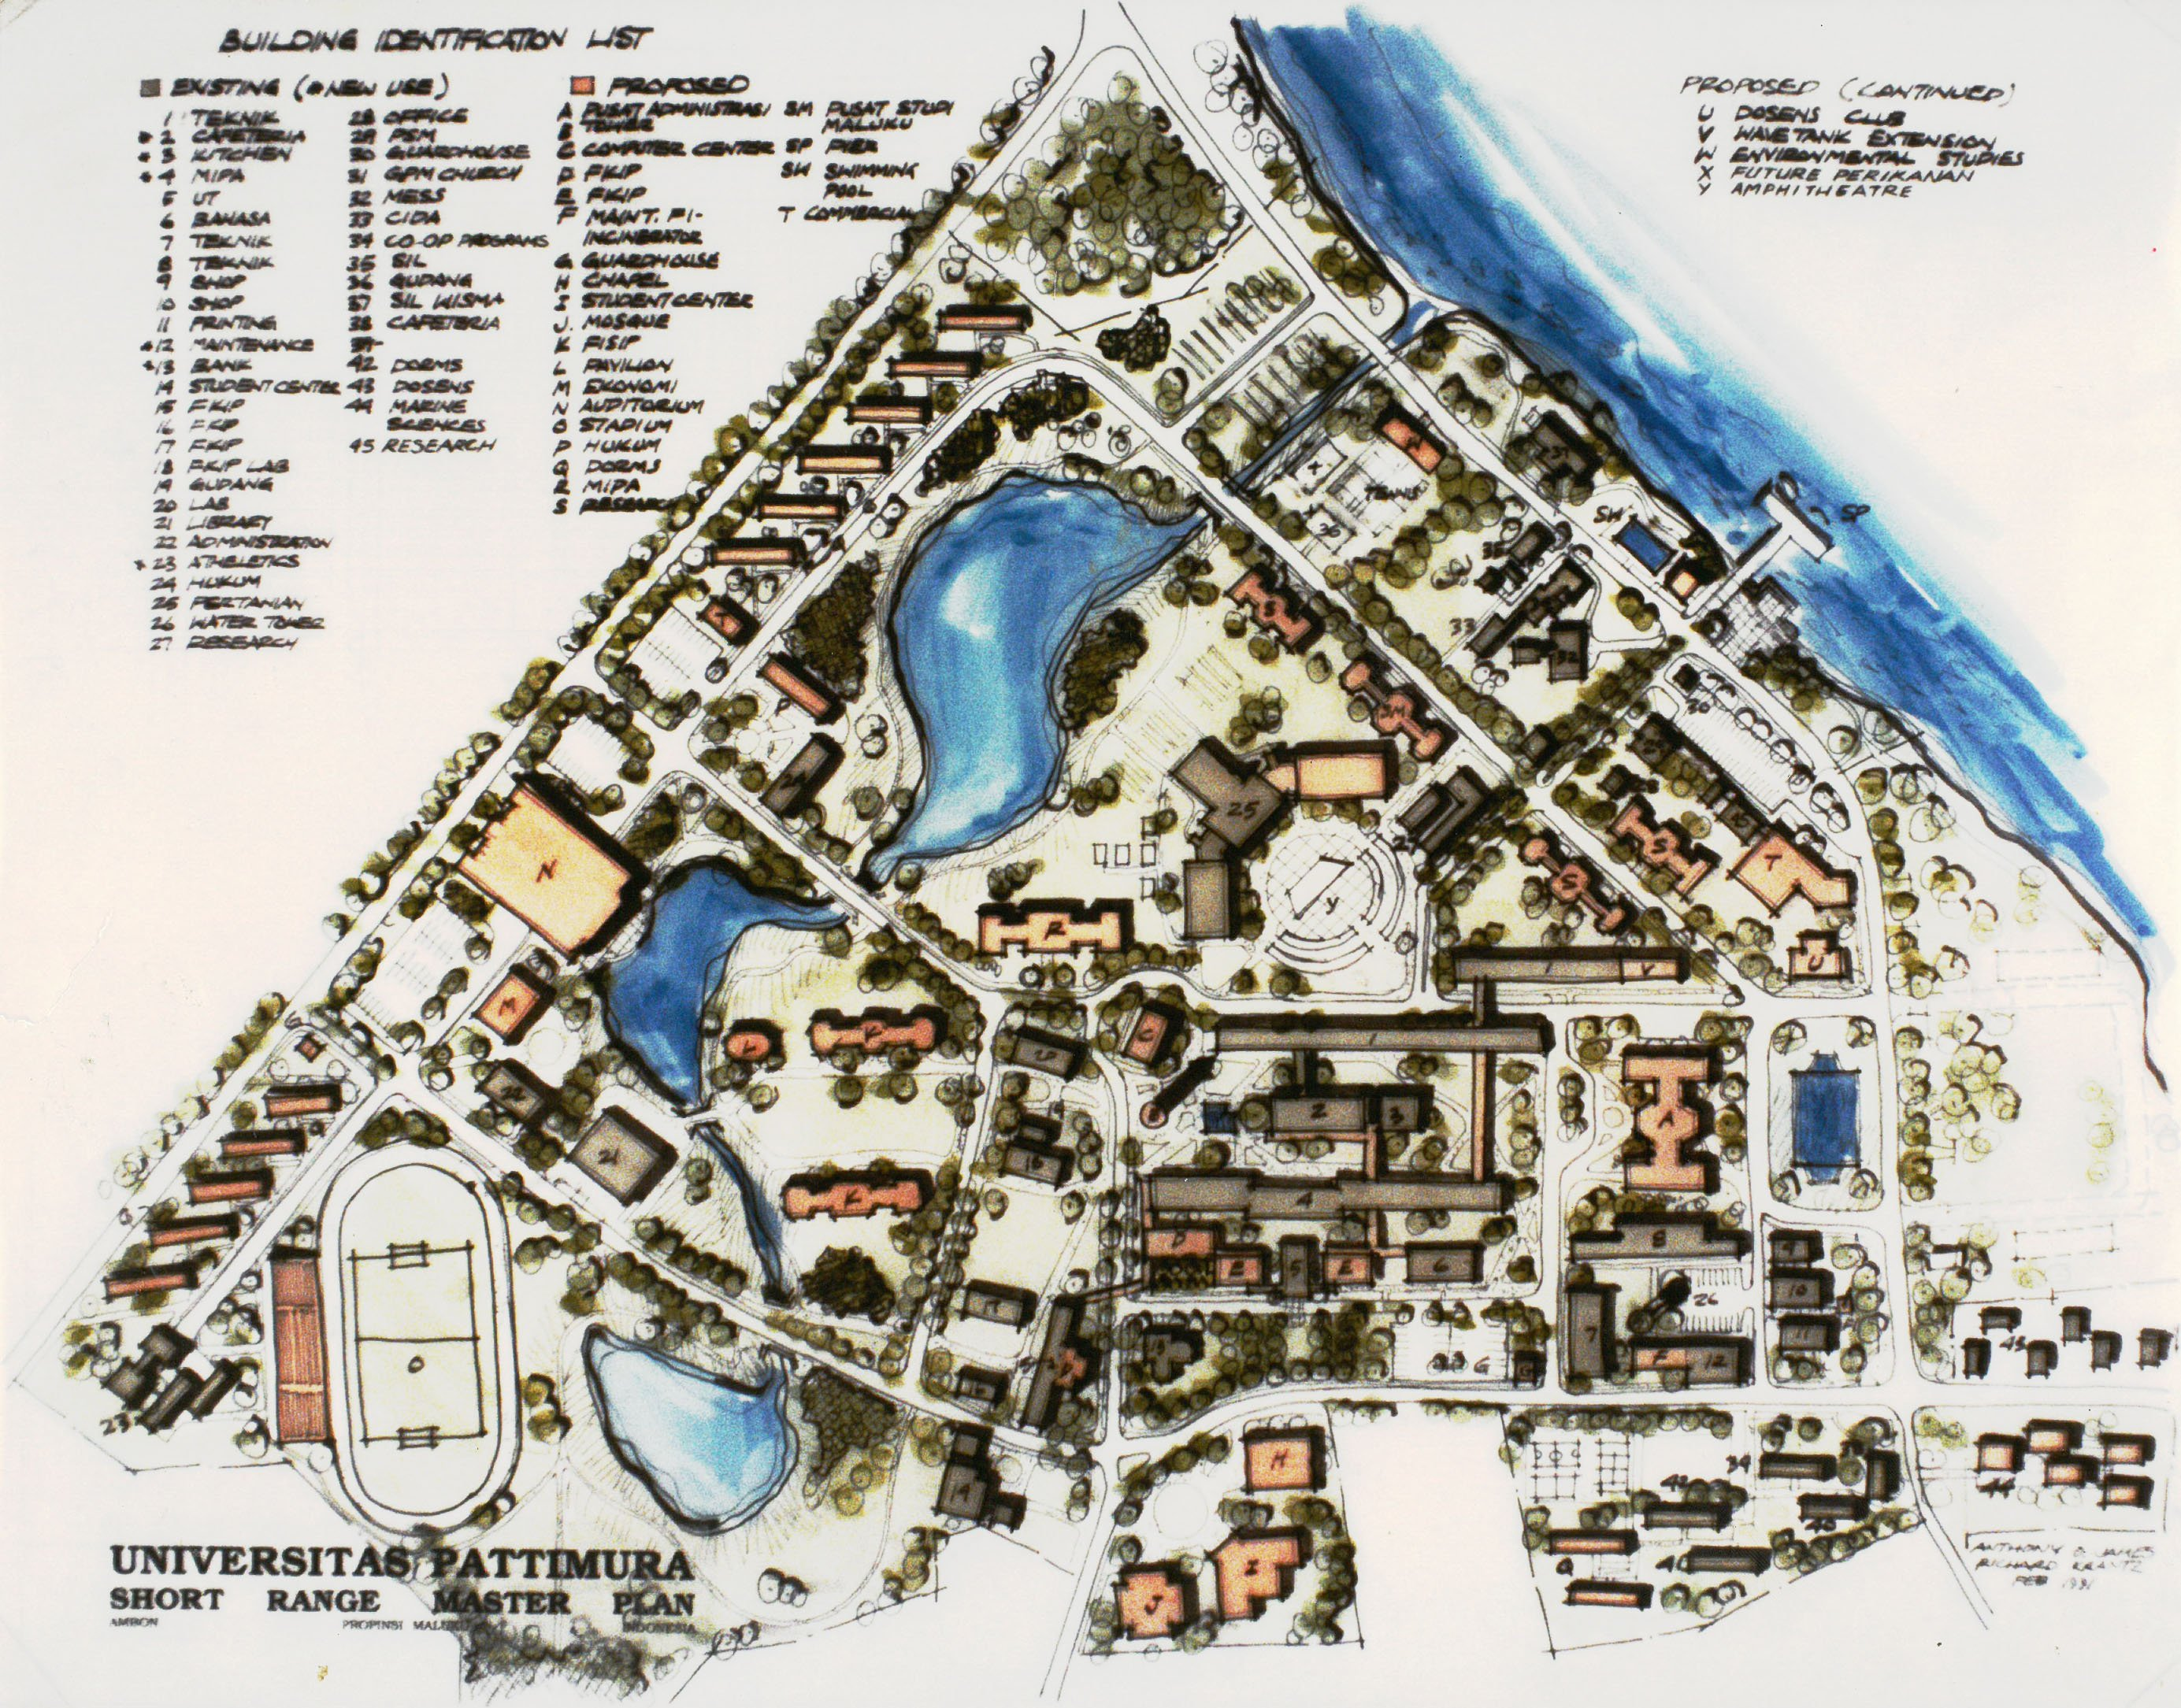 Universitas Pattimura campus Master Plan.1383471346